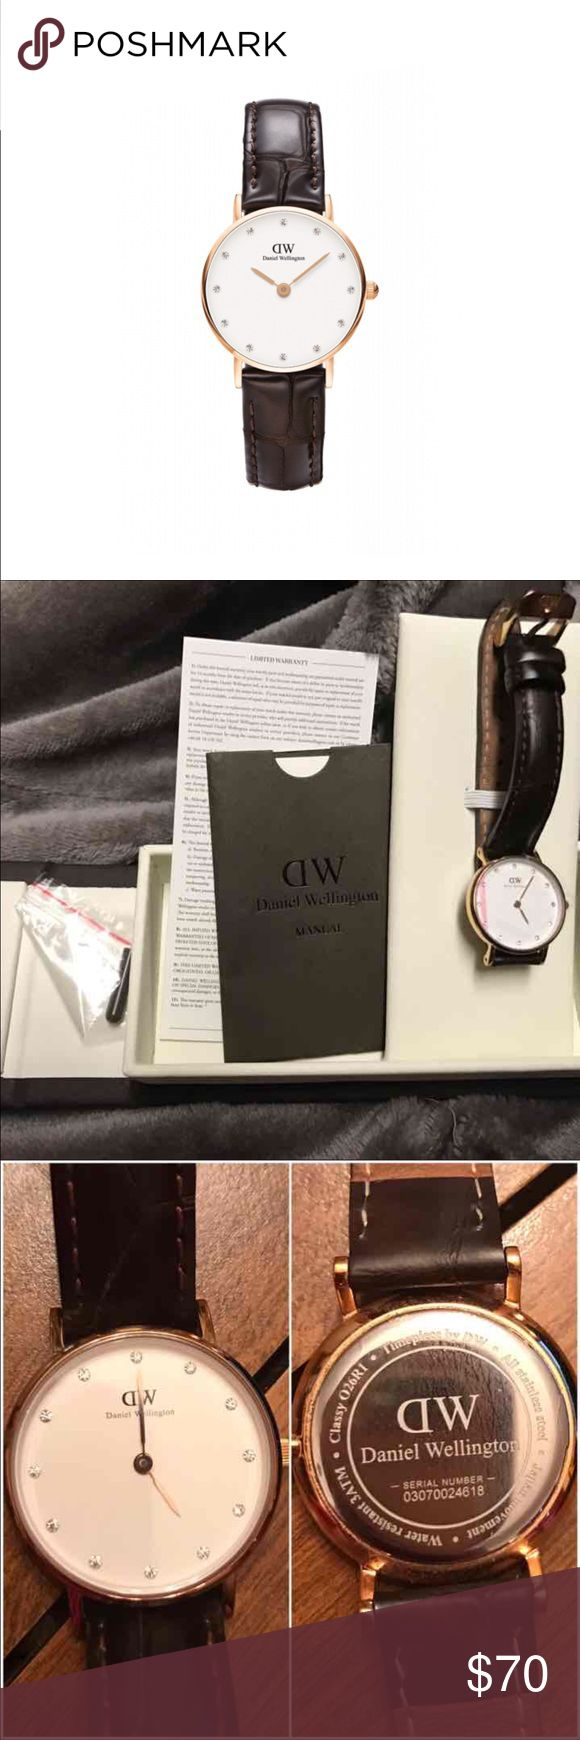 """Daniel Wellington 26mm Beautiful condition Authentic Daniel Wellington """"classy"""" 26mm with Swavorski crystals. Elegant and sleek watch is total classic piece. This has the leather crocodile strap and has been worn a few times. There are no cracks and rips in the leather. There is show of some wear in the leather strap in the 4th picture. There is nothing wrong with this, and is in perfect working condition. Comes with original box, manual, warranty, and screw driver. Price is negotiable…"""